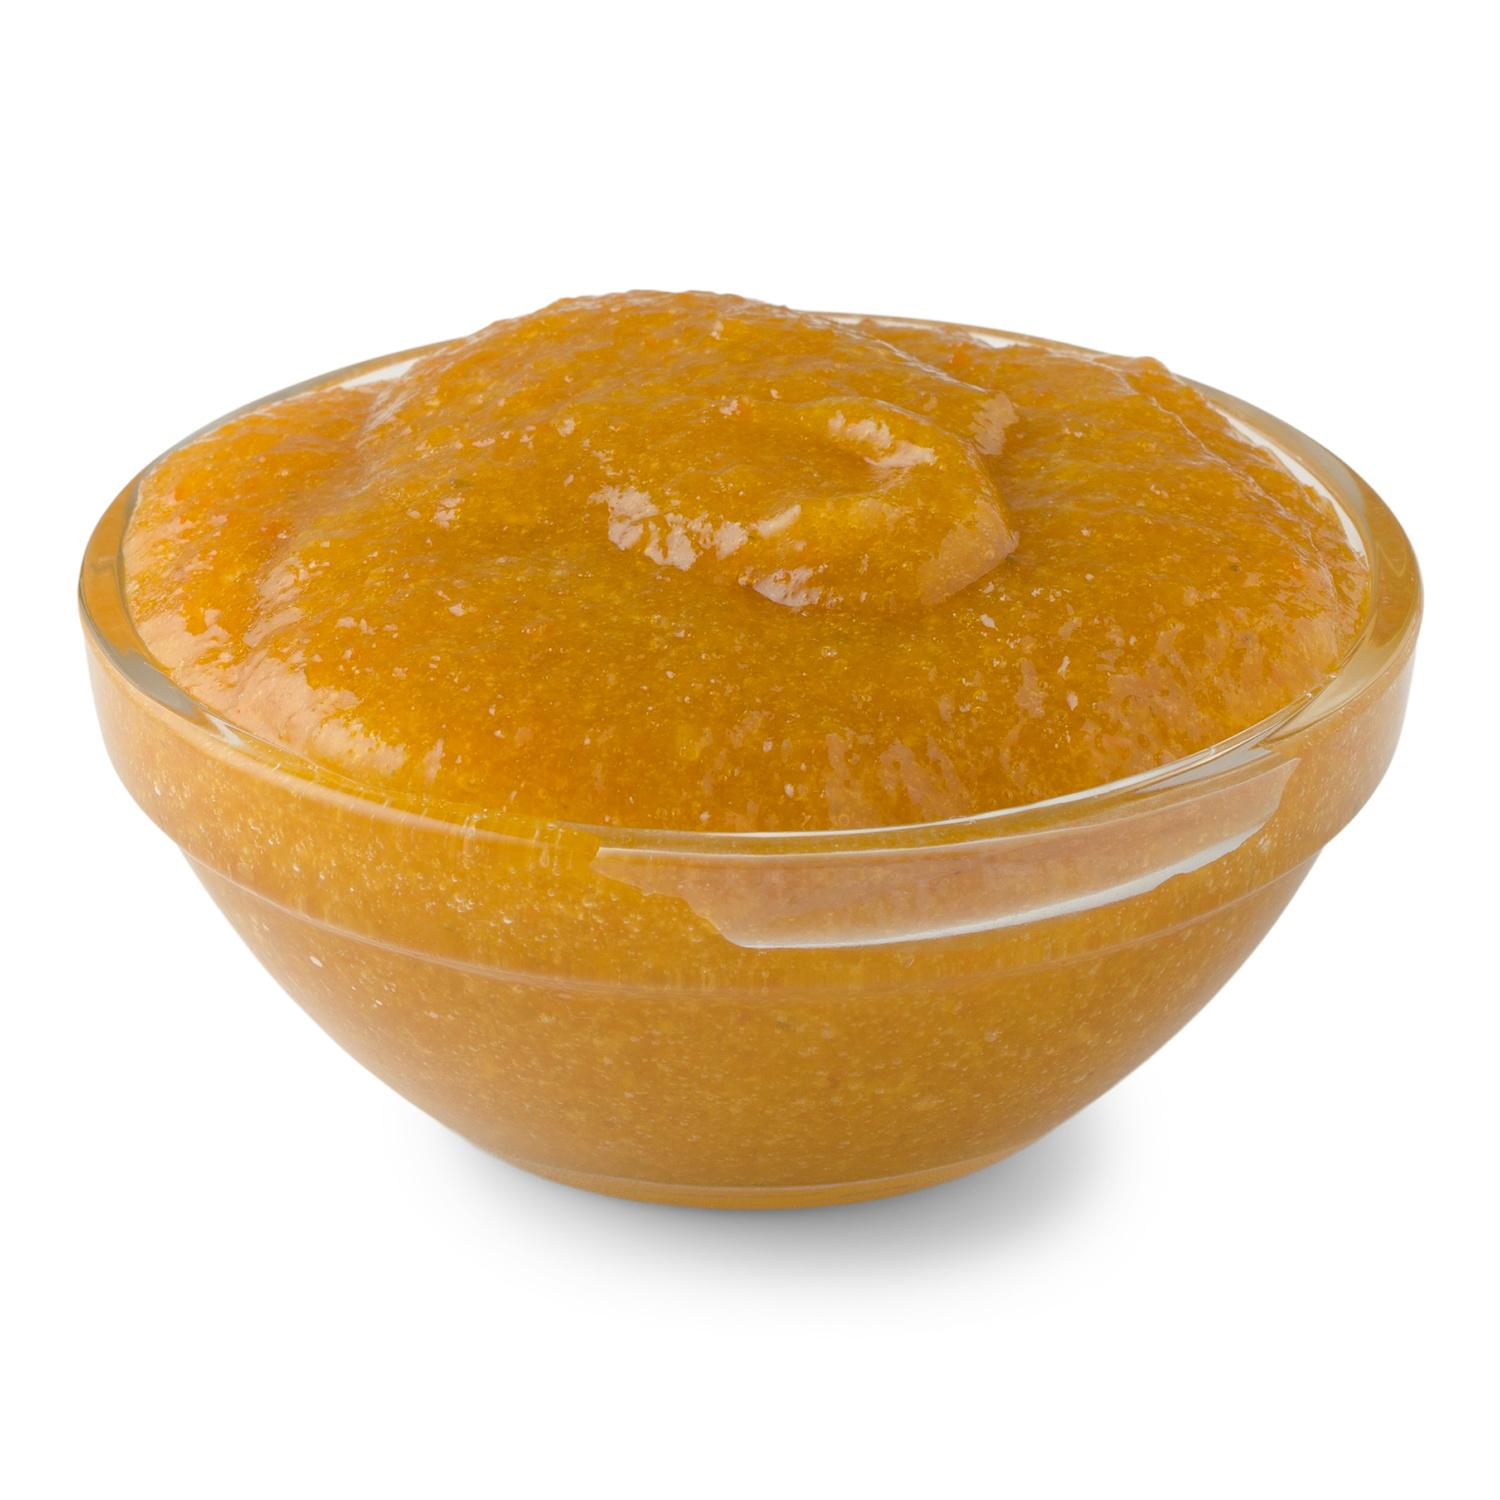 image of Sysco Imperial vegetable soup base